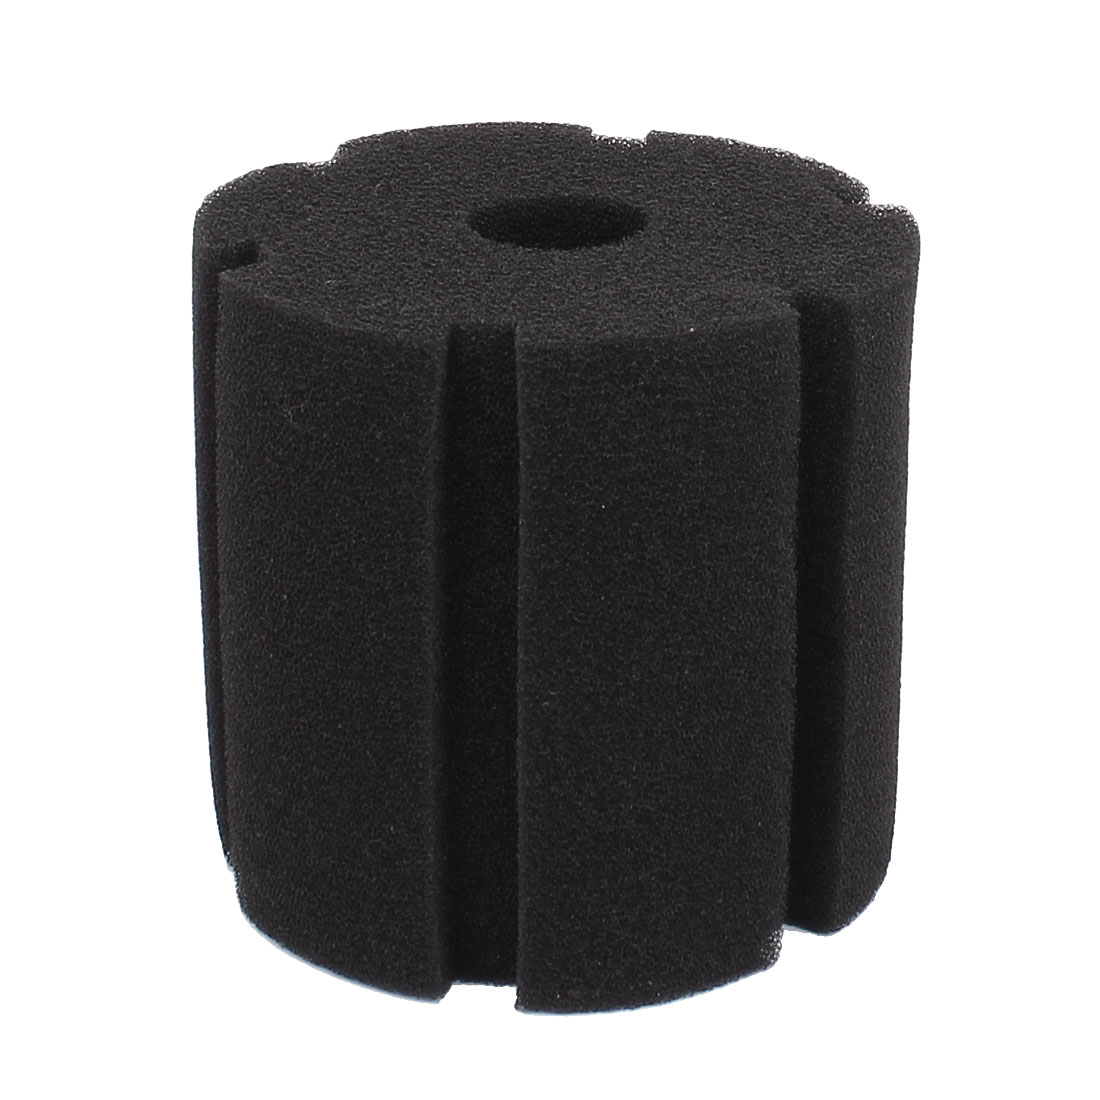 Aquarium Fish Tank Biochemical Filter Sponge 12cm x 11.5cm Black